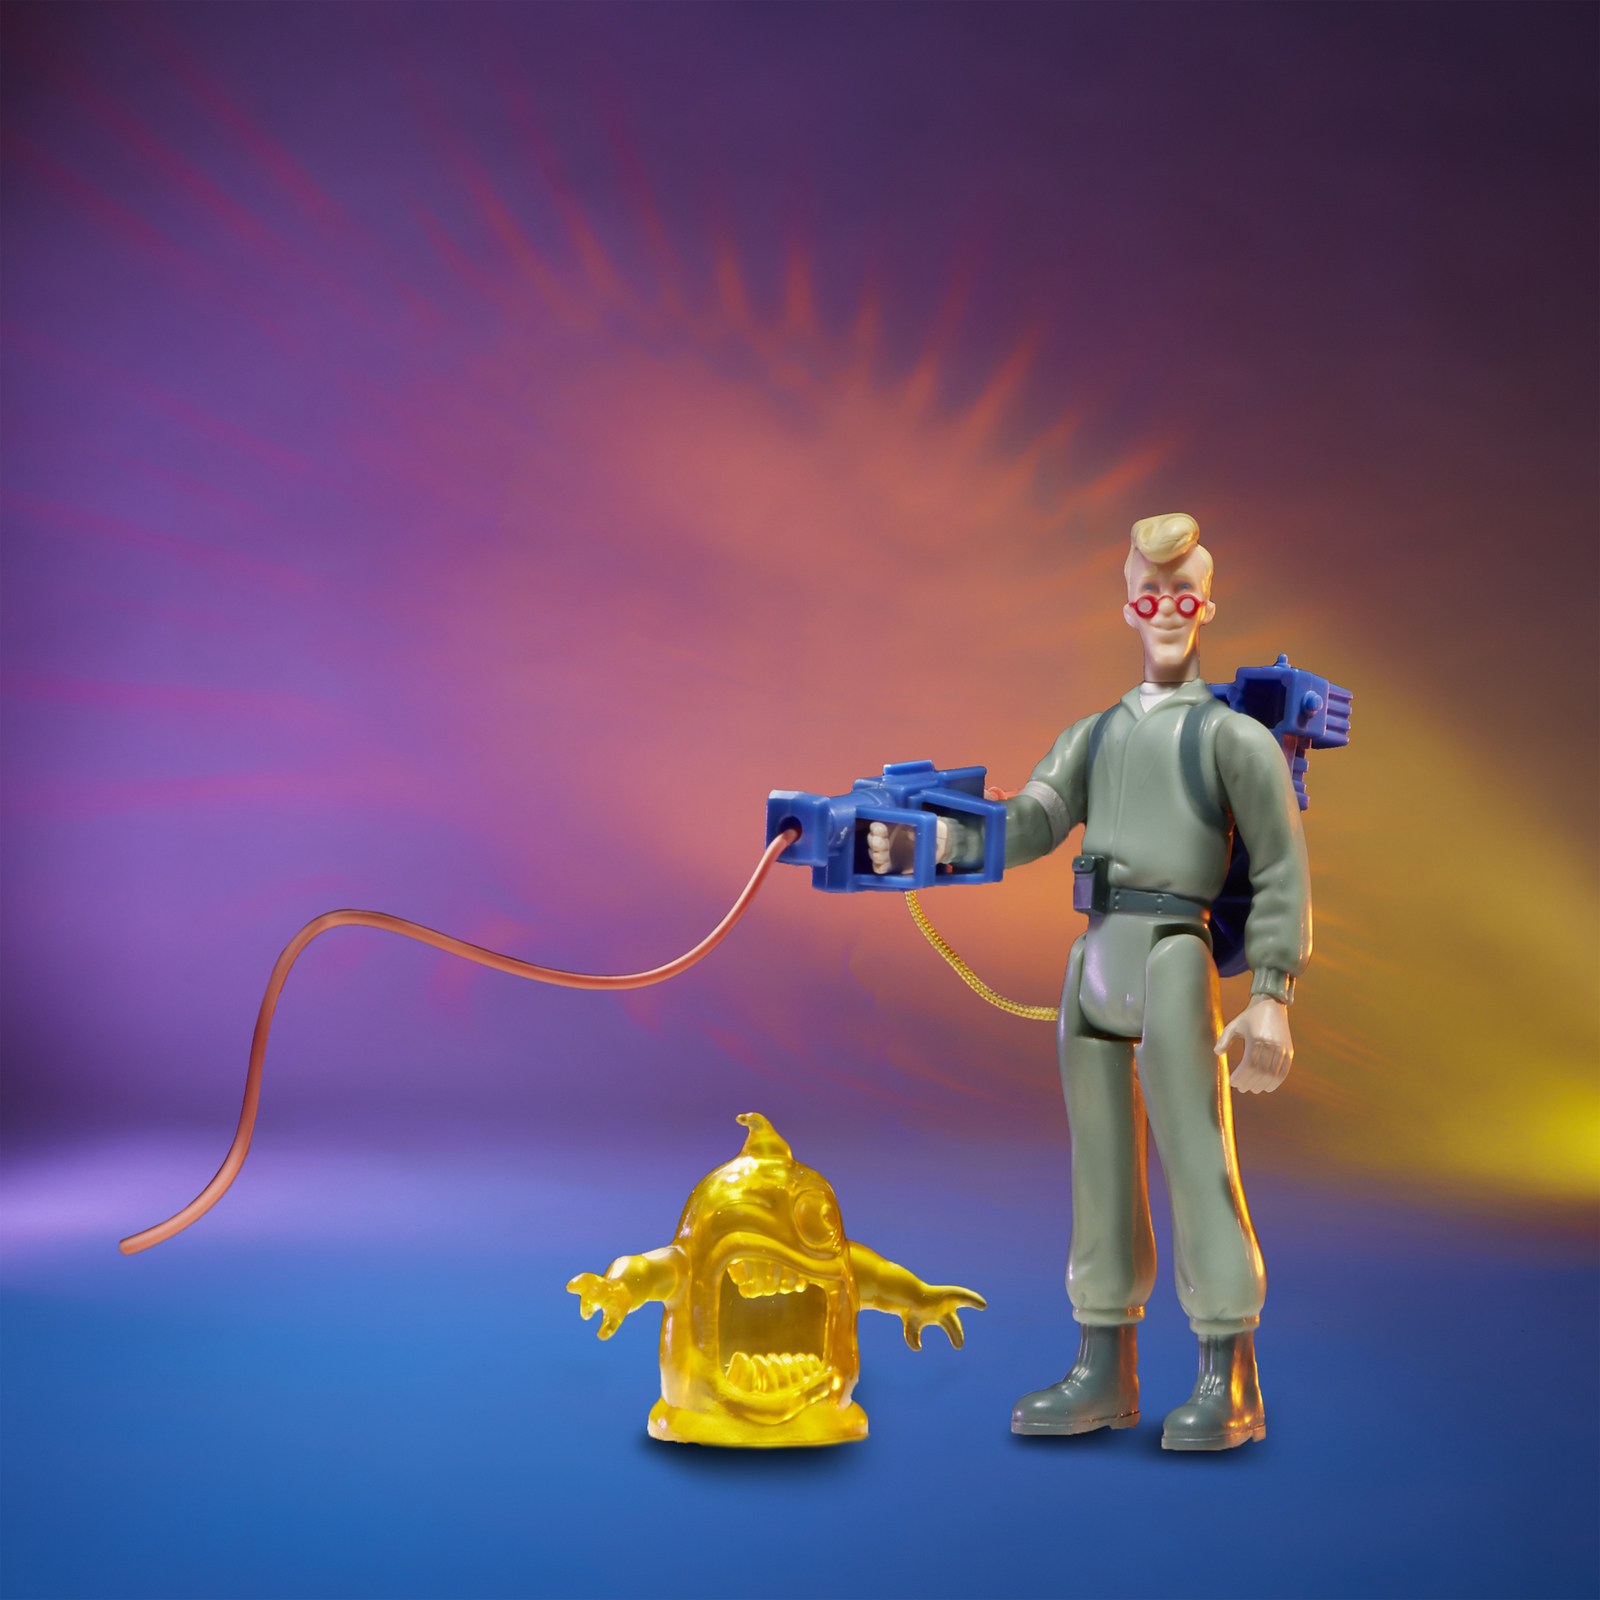 Ghostbusters: Kenner Classics - Egon Spengler and Gulper Ghost image